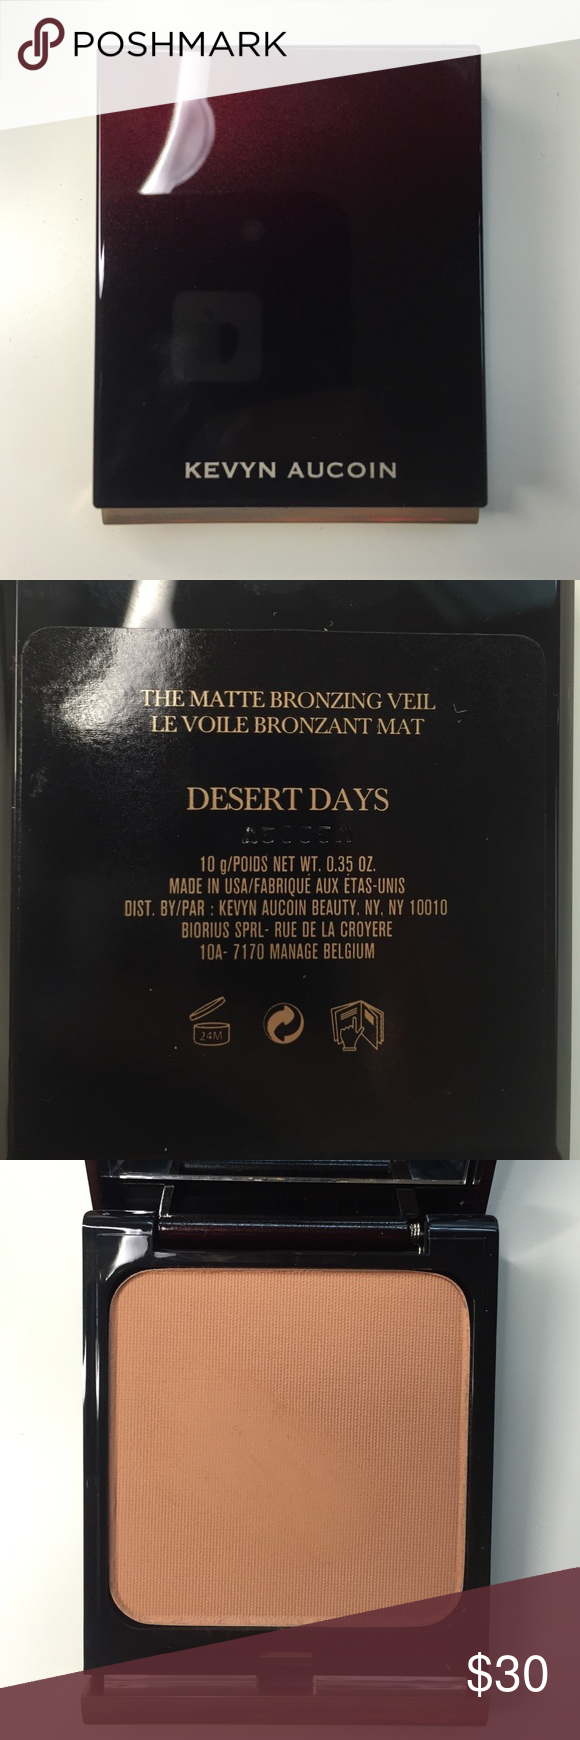 "Kevyn Aucoin The Matte Bronzing Veil NEVER USED only took a swatch with my clean finger. Kevin Aucoin the matte bronzing veil in the shade ""Desert Days"". Perfect bronzer for fair skin. Comes with suede dust bag Kevyn Aucoin Makeup Bronzer"